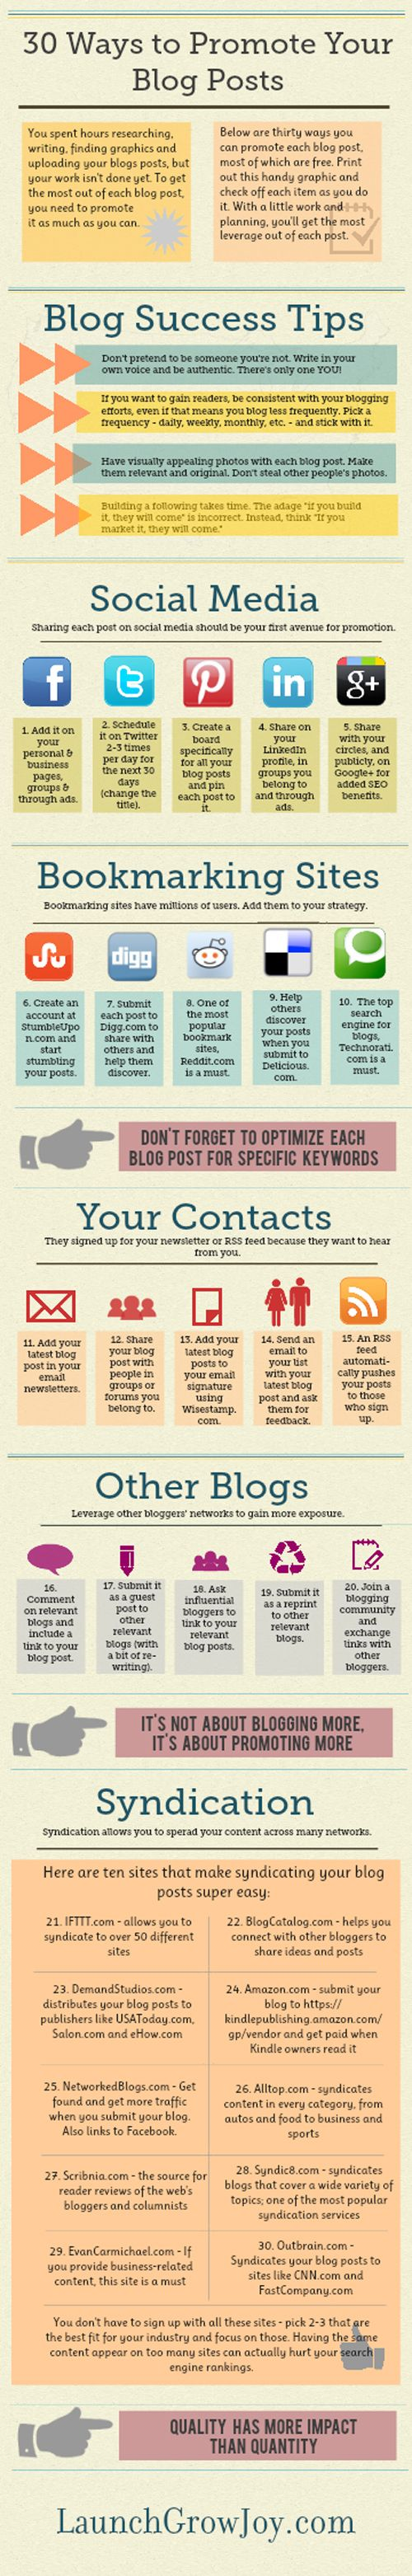 30 Ways To Promote Your Posts And Drive More Traffic To Your Blog